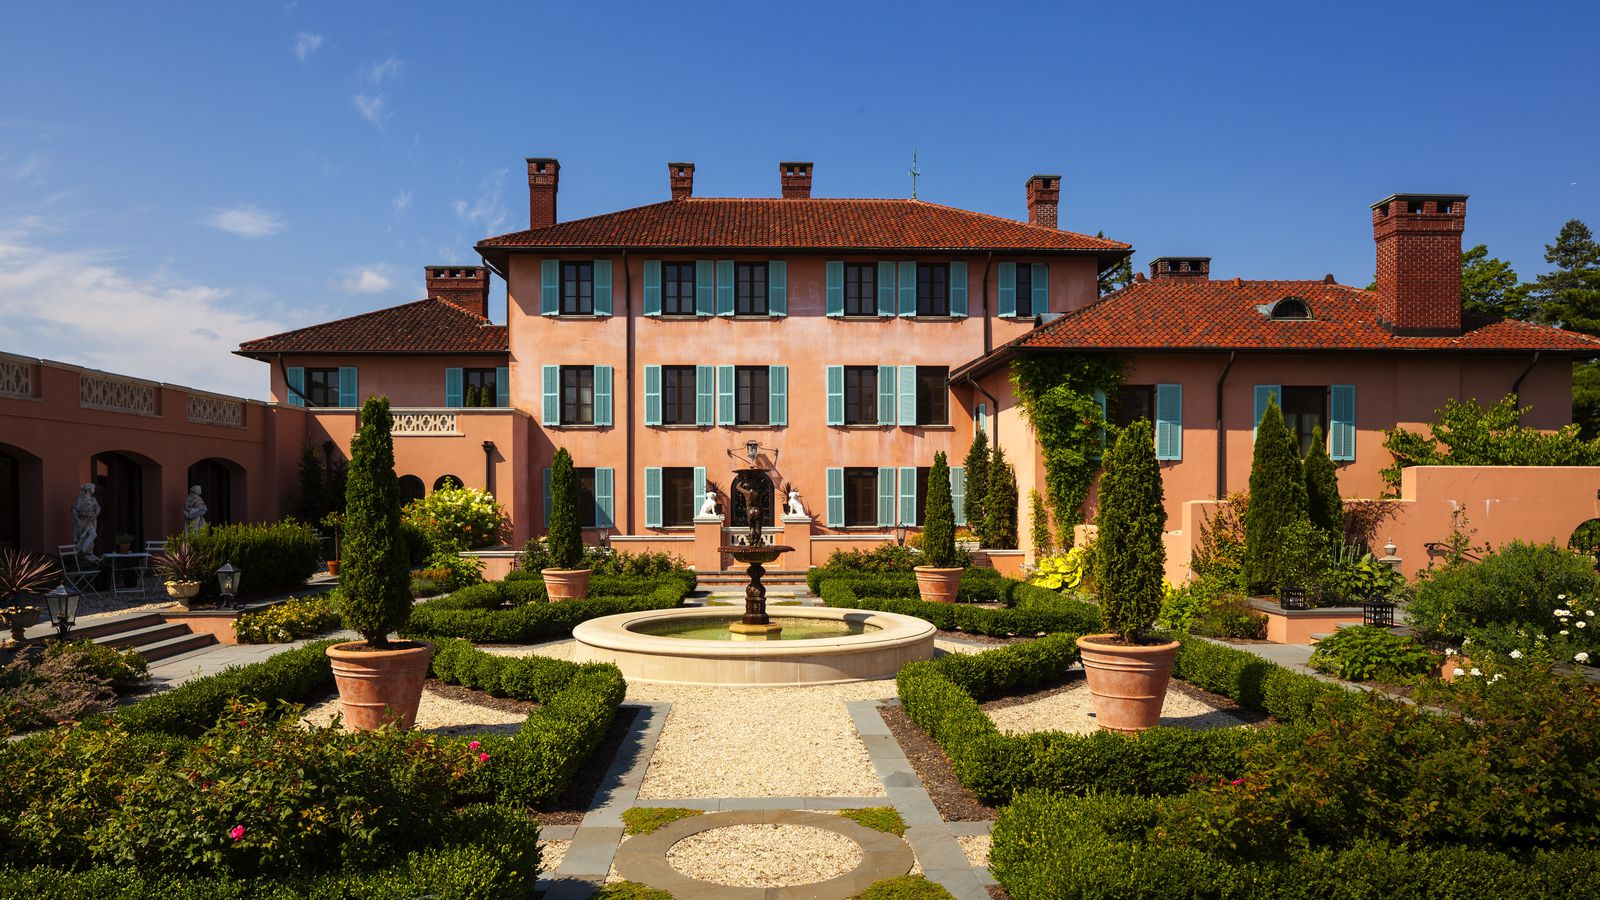 Luxury Mansions: How Two Neglected Mansions Became Leading Luxury Hotels